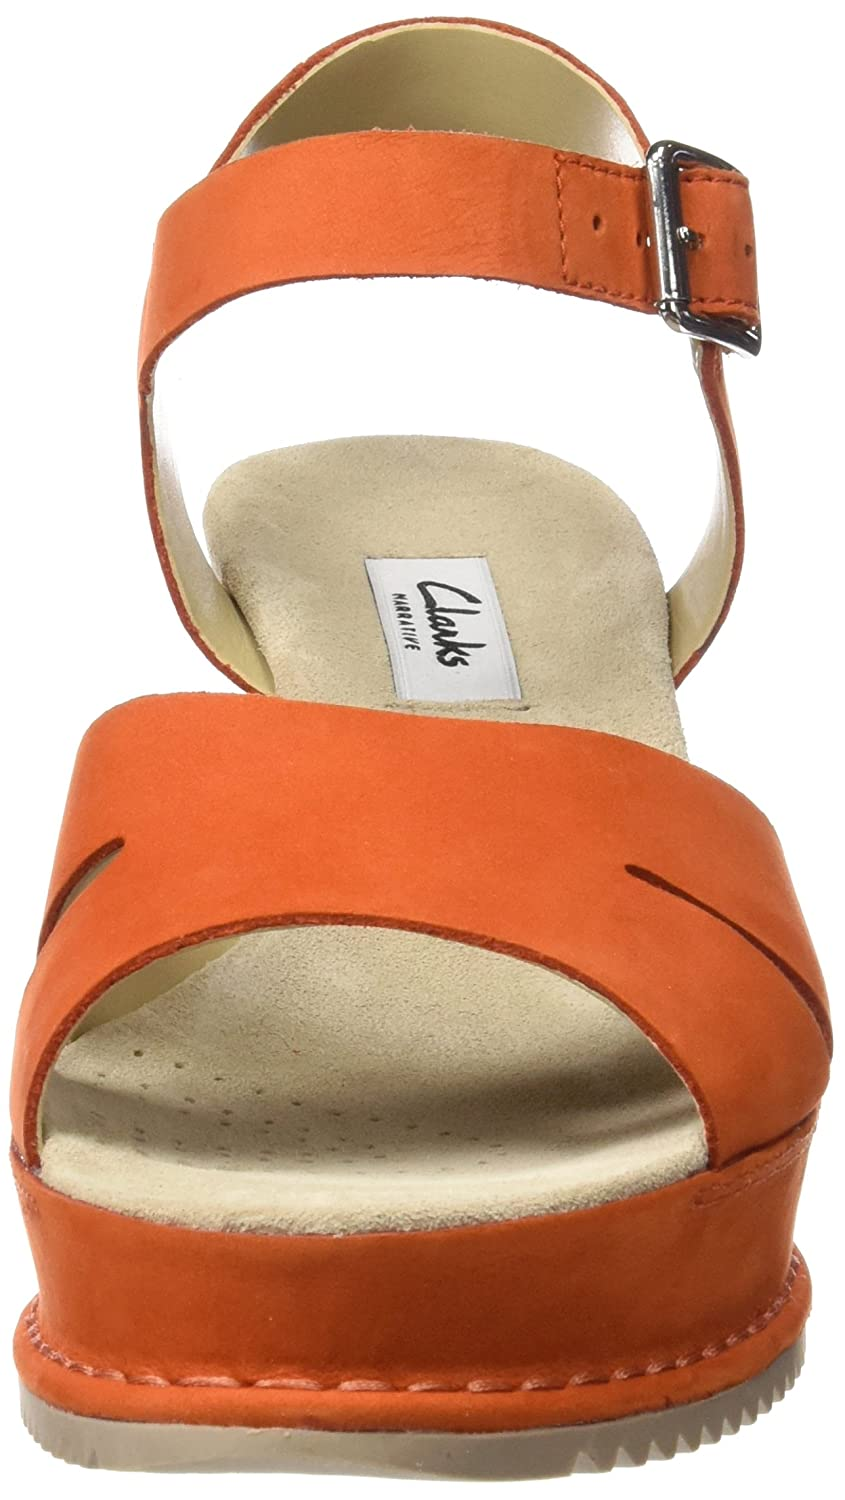 4f7493c2f3cc Clarks Women s Akilah Eden Nubuck Leather Fashion Sandals  Buy Online at  Low Prices in India - Amazon.in